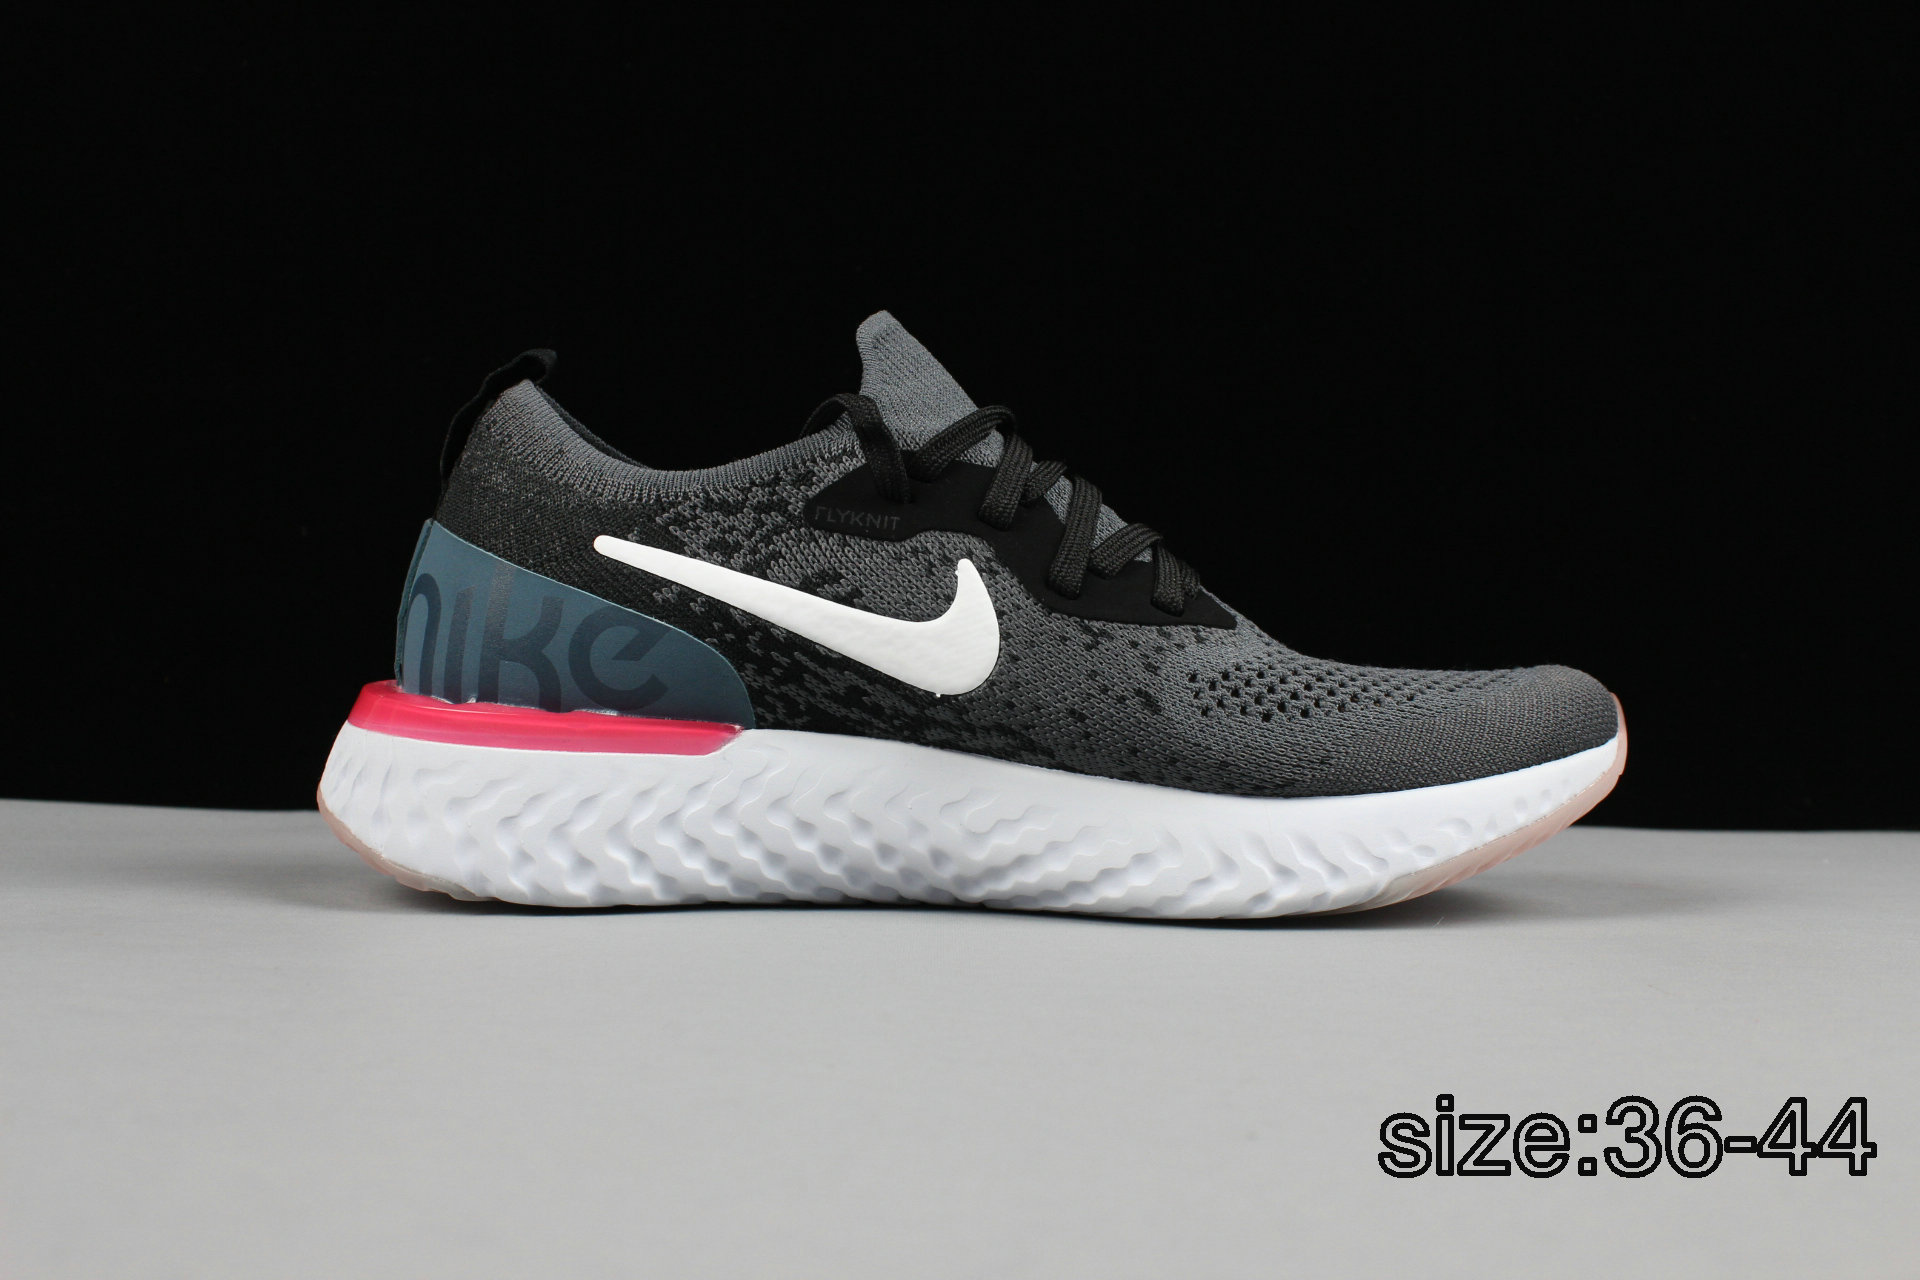 NIKE EPIC REACT FLYKNIT DARK GREY WHITE